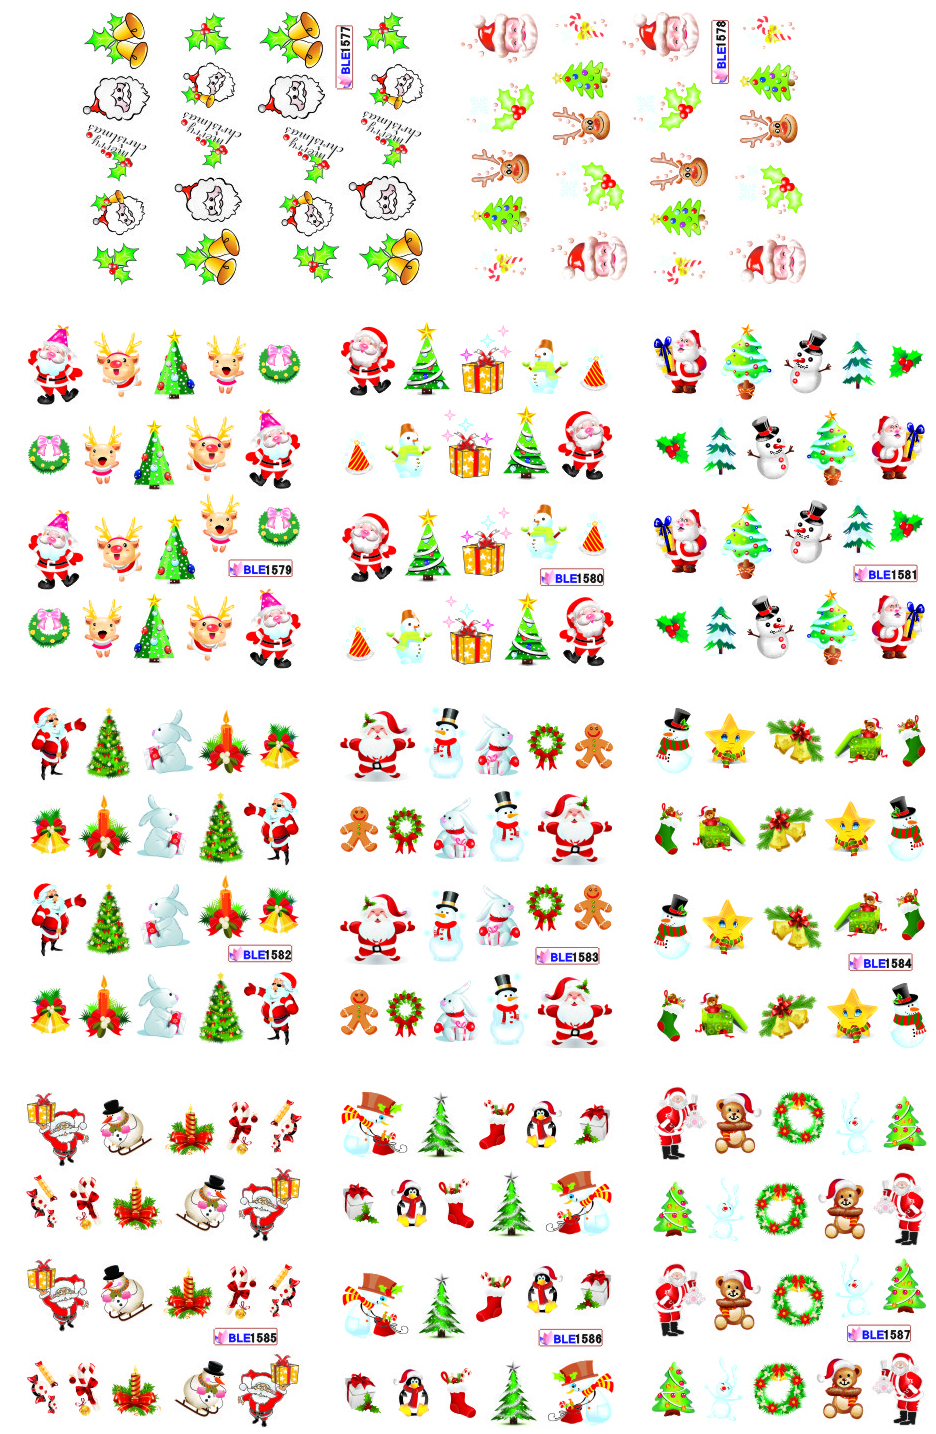 on sale !! 1lot by 20 papers 11 New Style Nail Art Water Sticker Christmas gift in 2016 for BLE1577-1587,